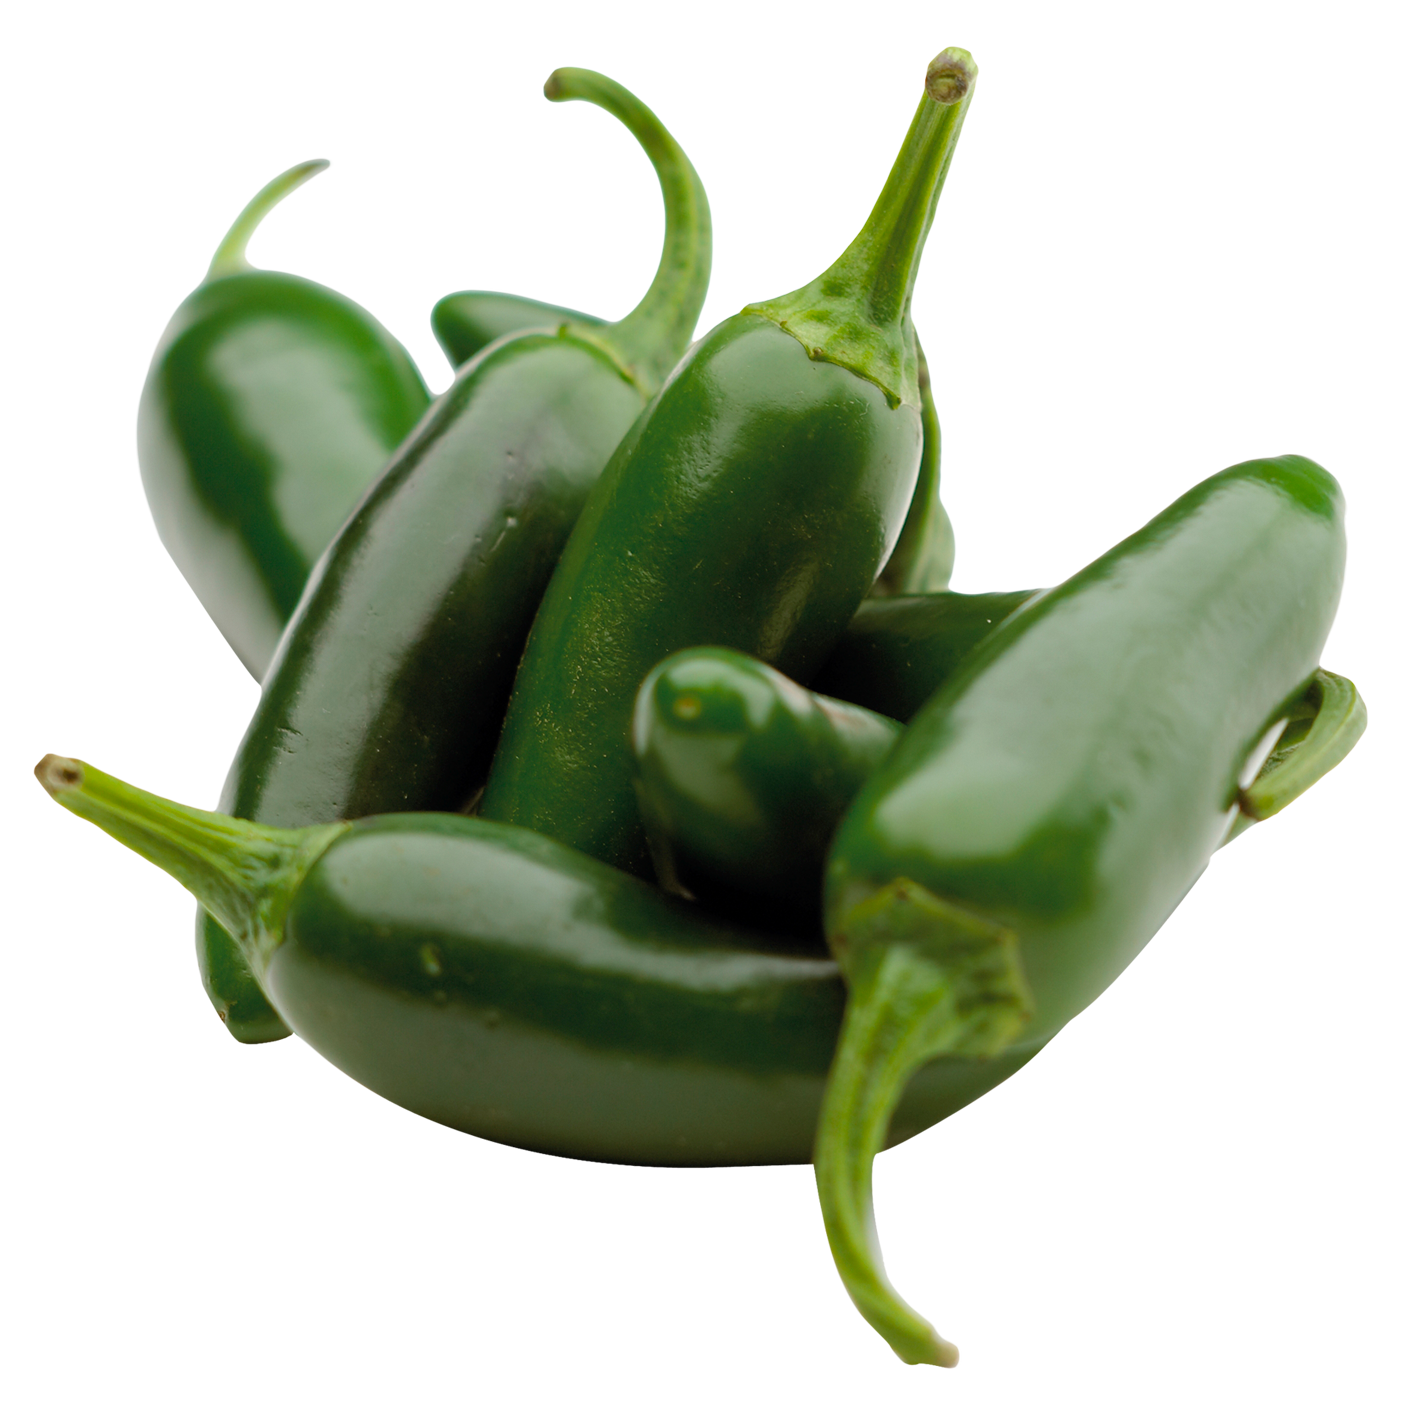 Green Chili Pepper PNG Image - Pepper PNG